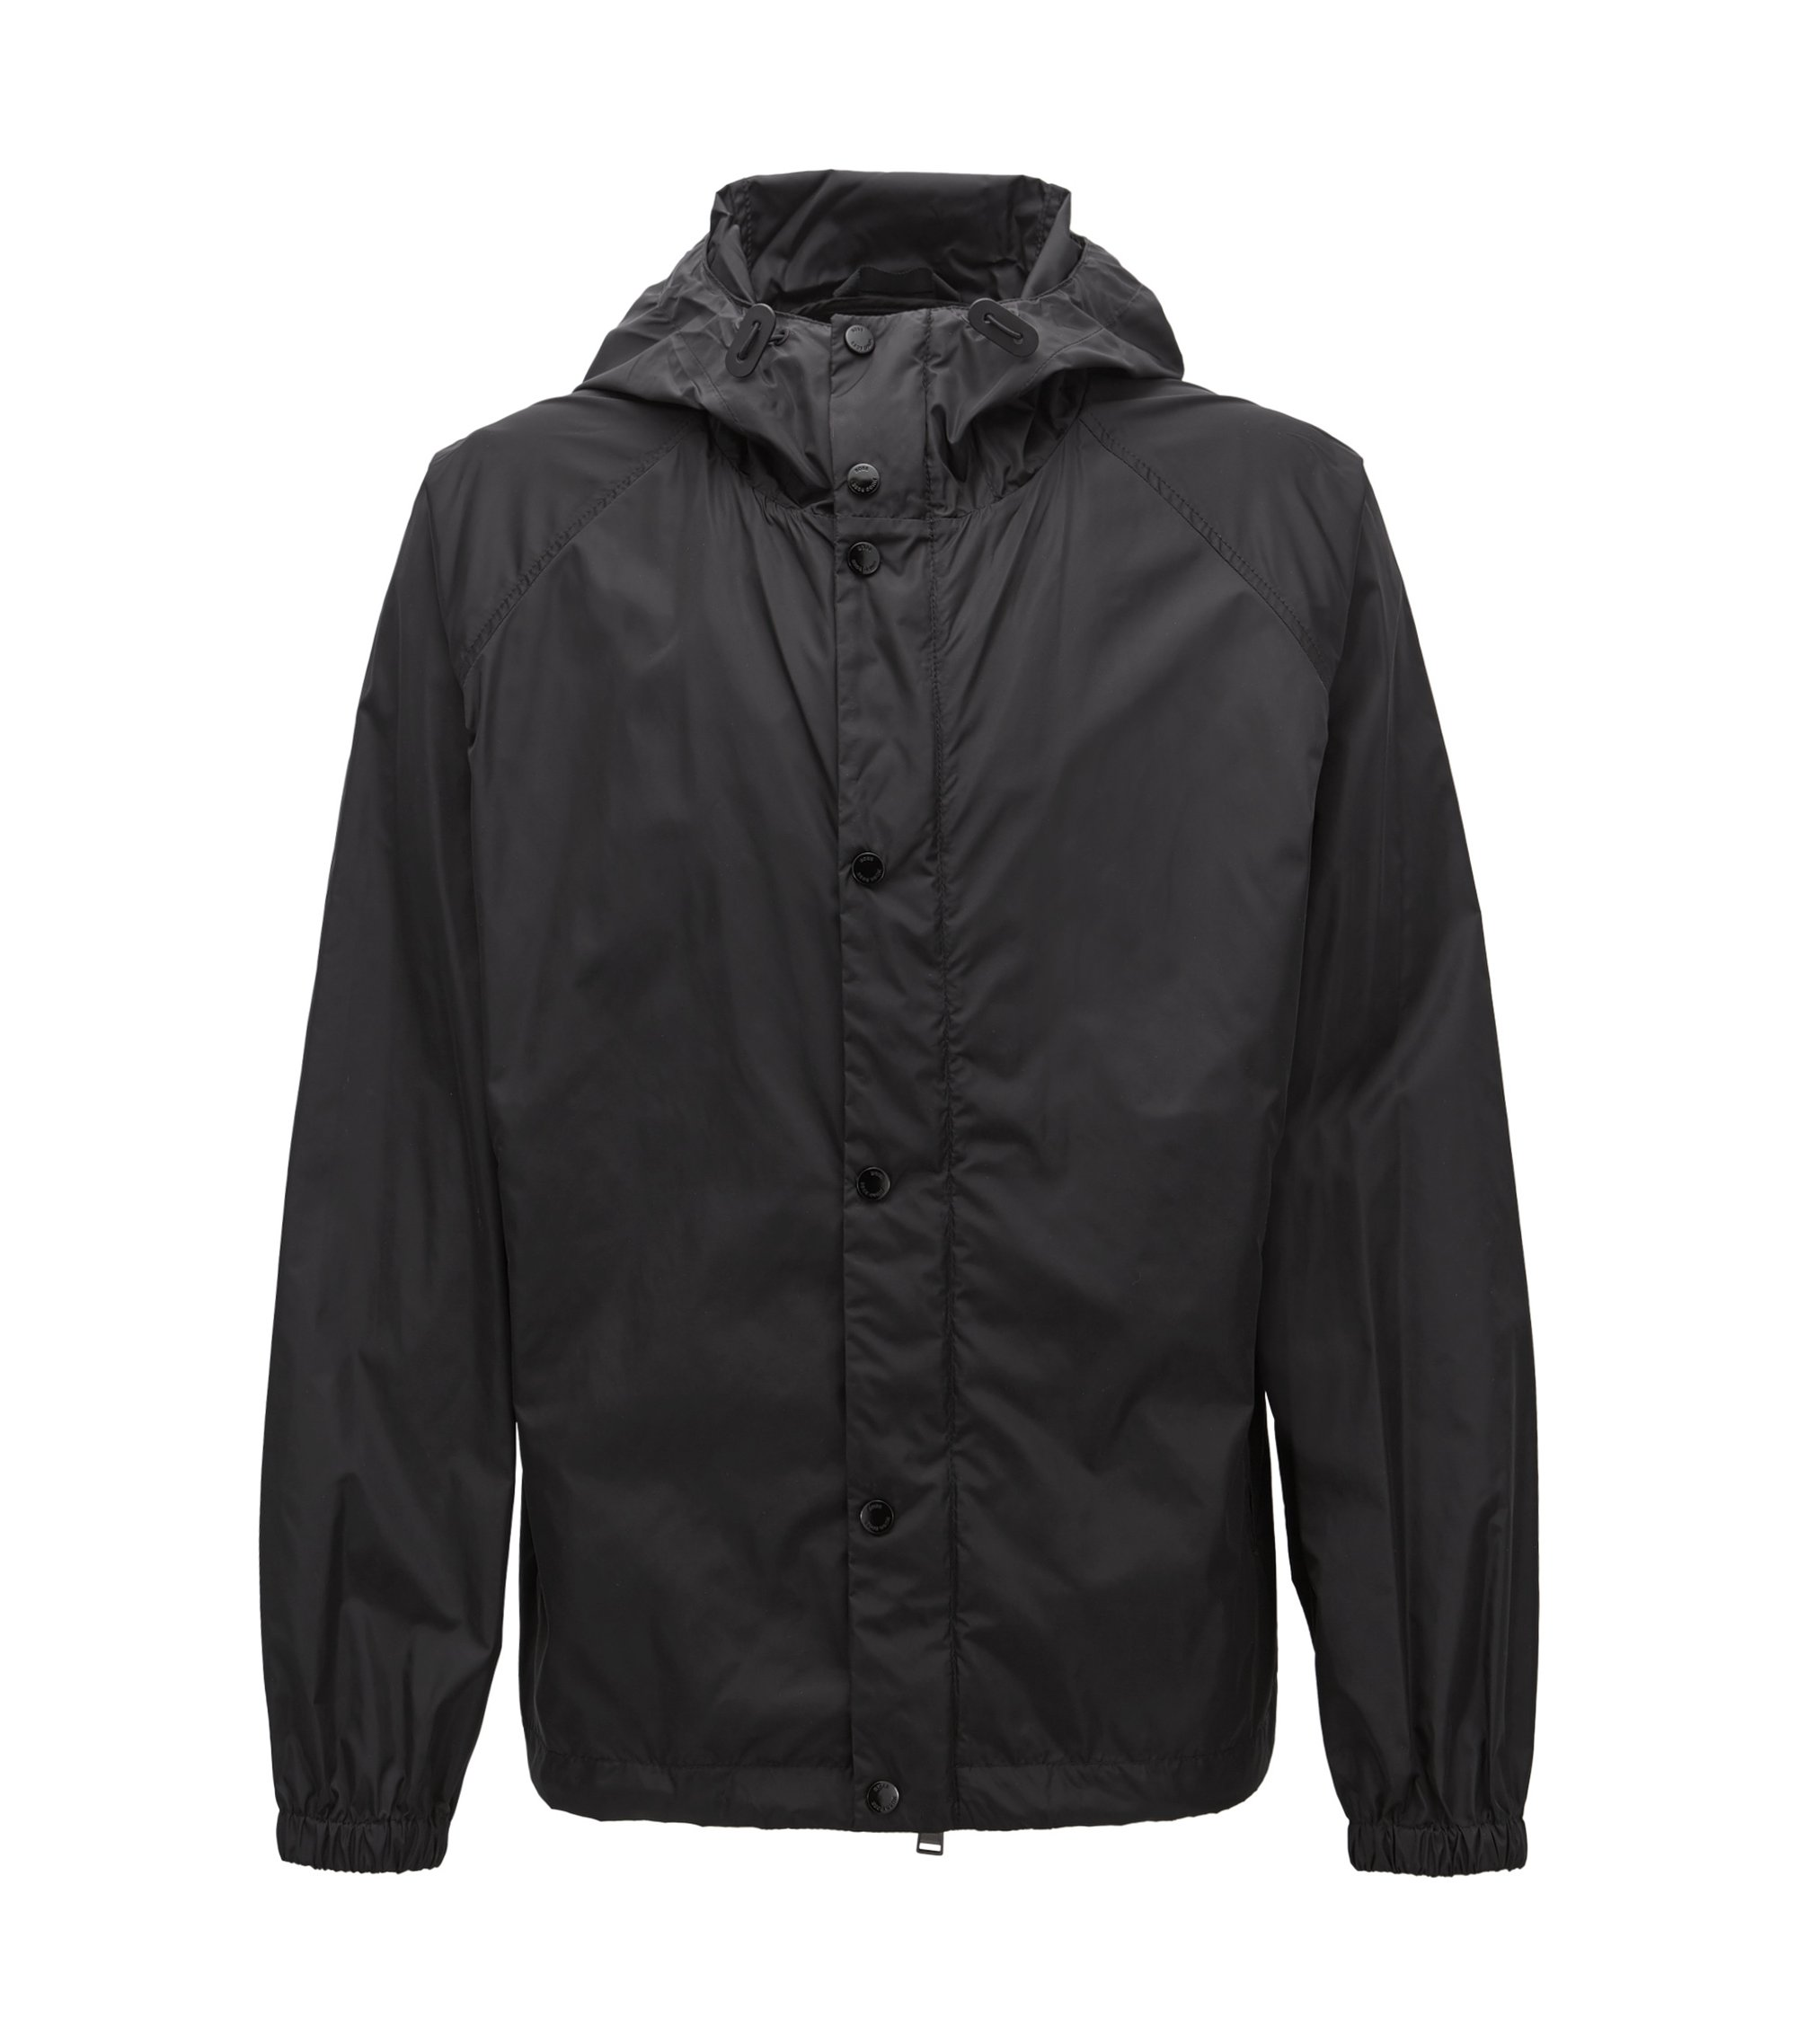 Windbreaker jacket in technical water-repellent fabric, Schwarz